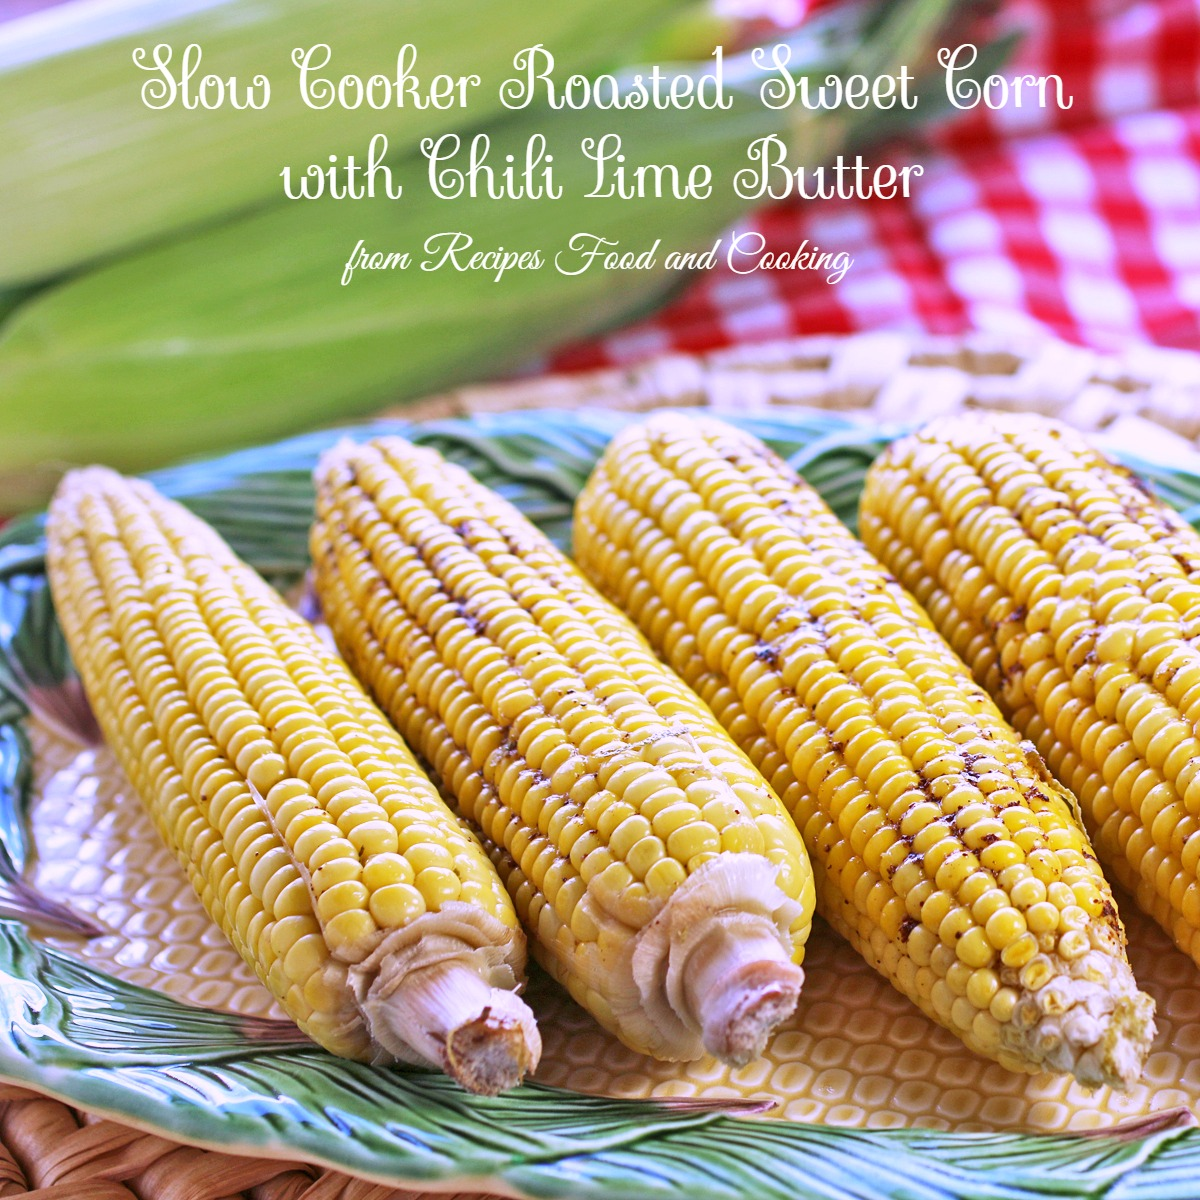 Slow Cooker Roasted Sweet Corn with Chili Lime Butter